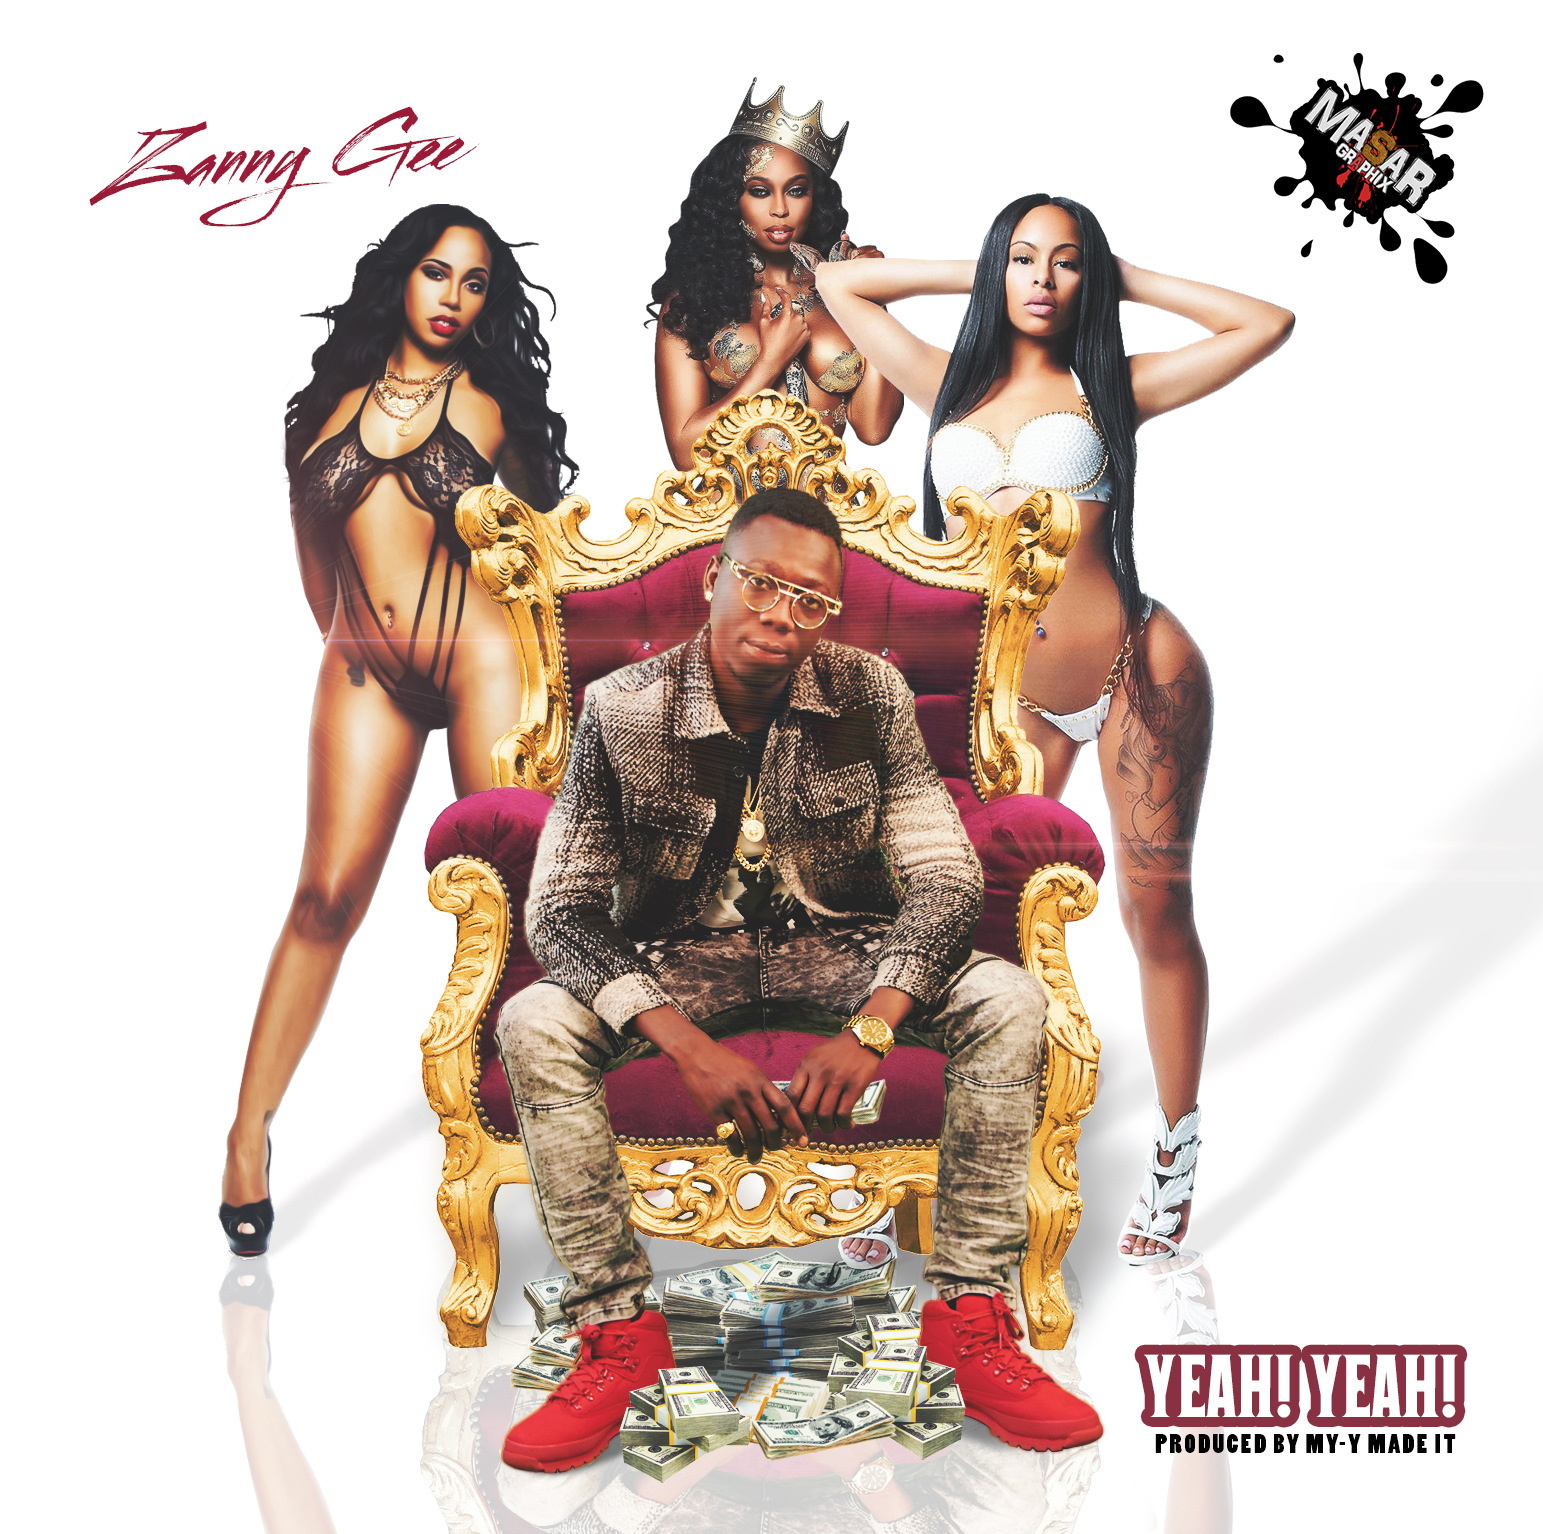 Zanny Gee - Yeah Yeah - Designed by Masar